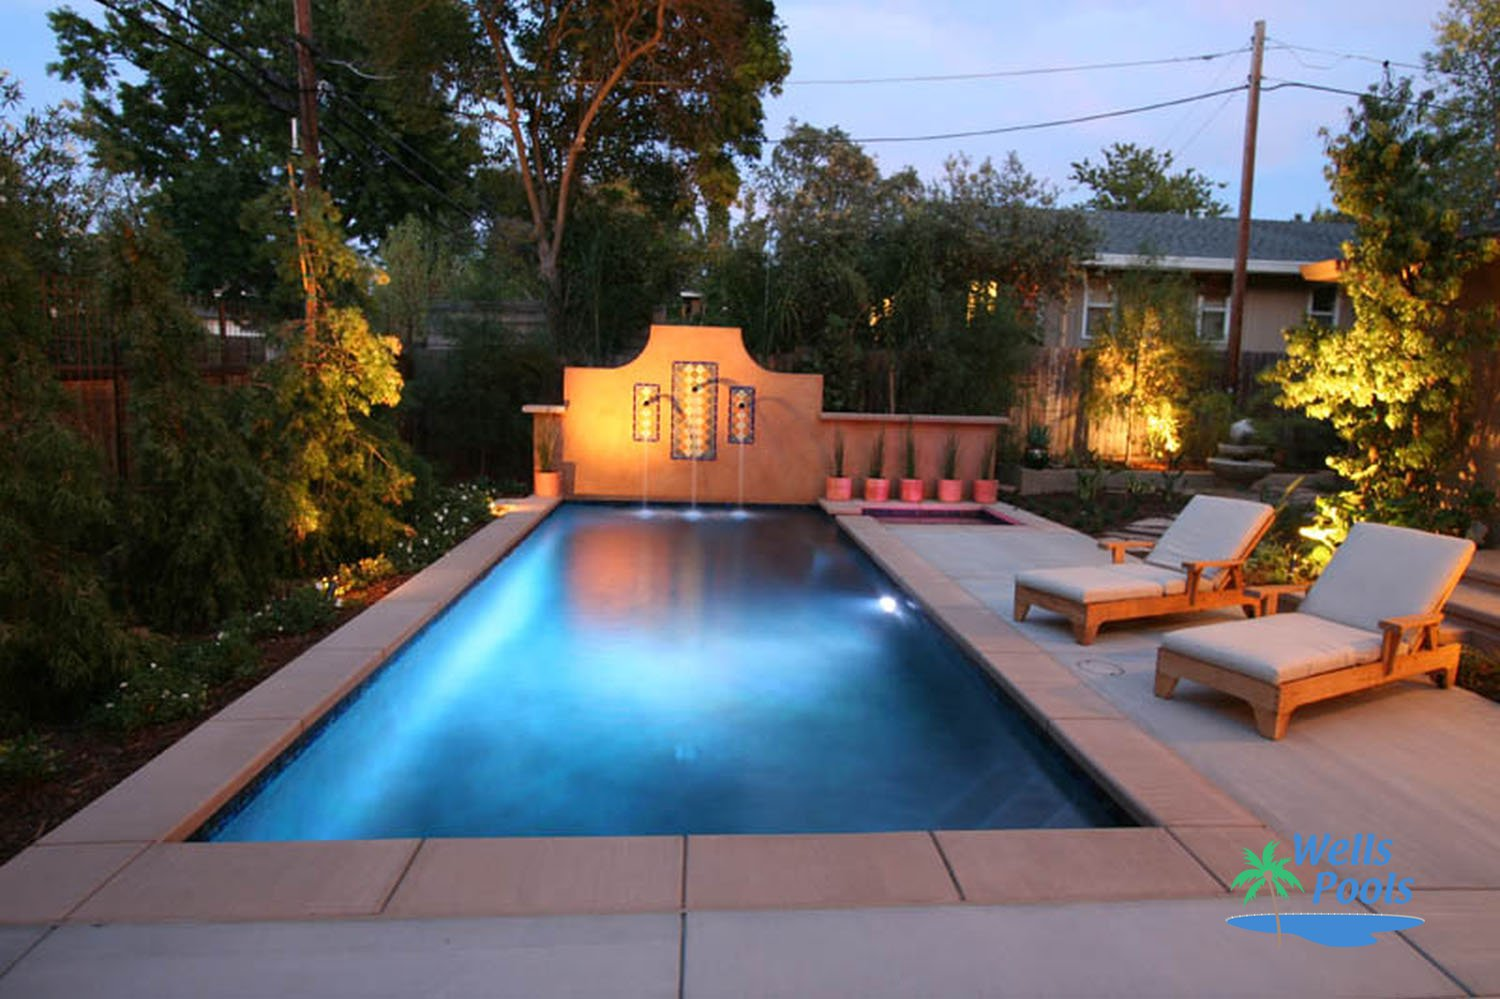 24 Small Pool Ideas To Turn Your Small Backyard Into: great pool design ideas